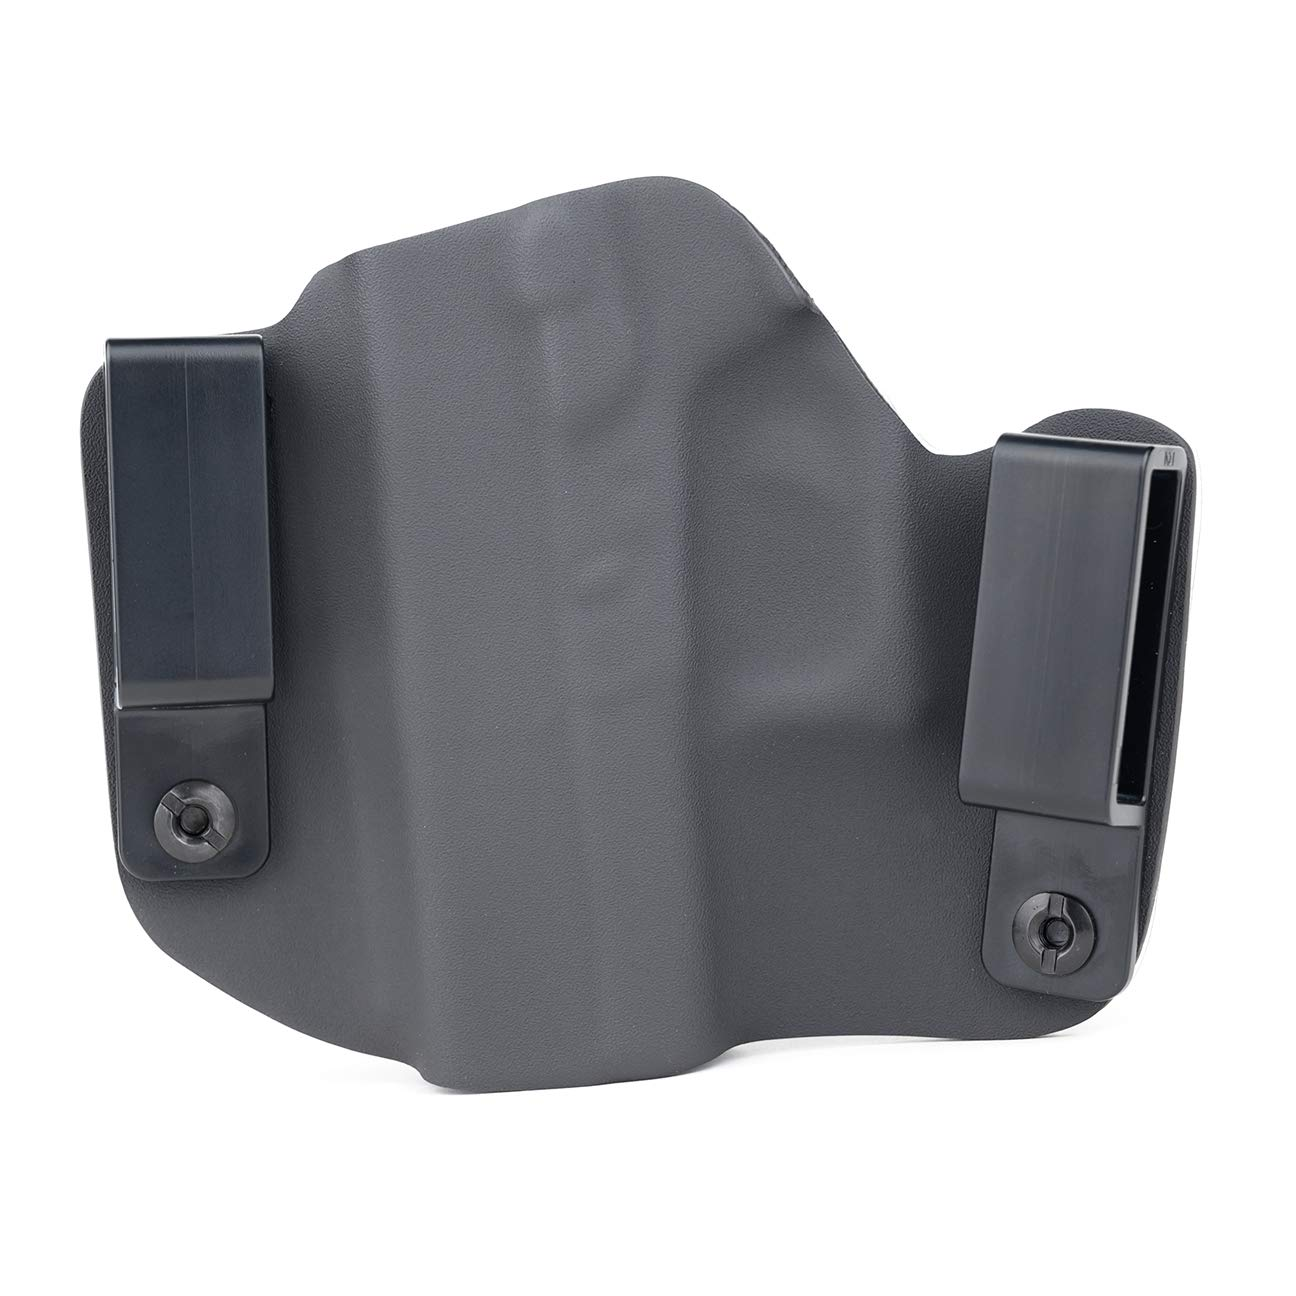 Amazon.com: R&R Holsters: Negro - OWB Kydex Holster para ...